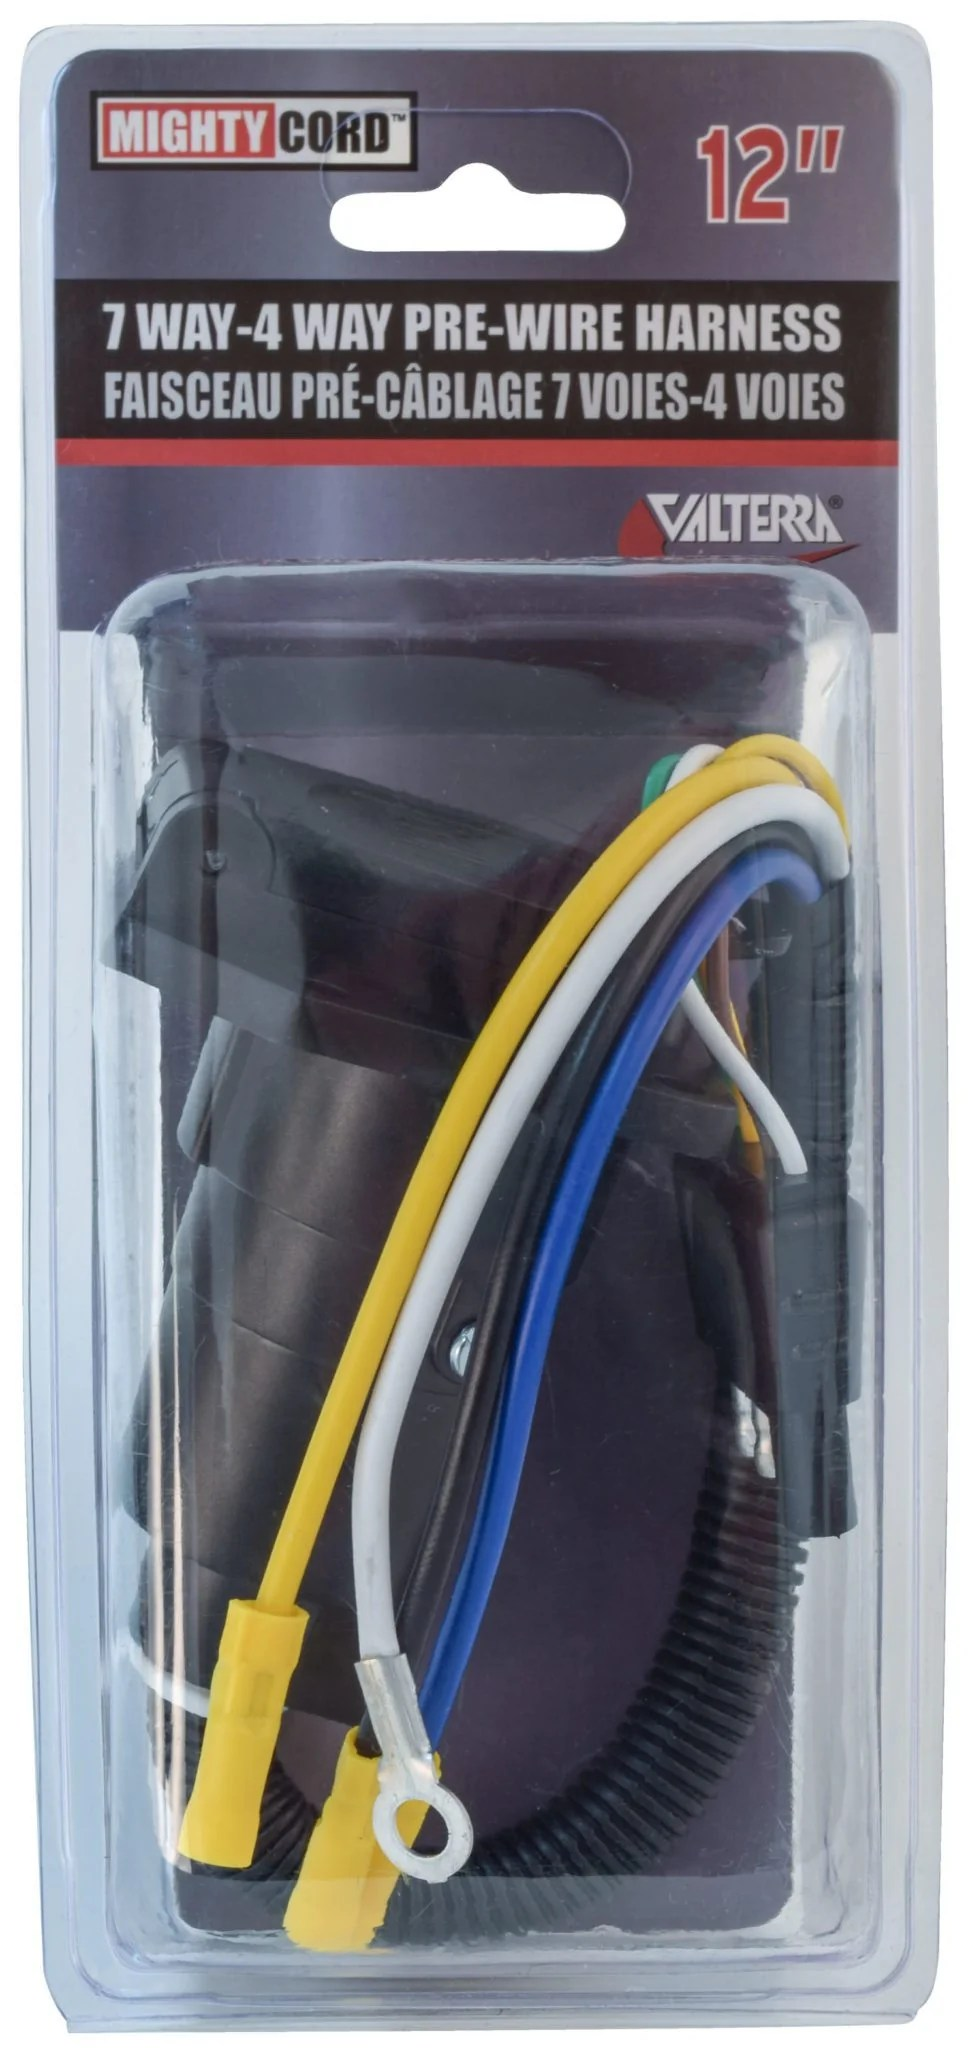 medium resolution of mighty cord 7 way to 4 way pre wire harness 12